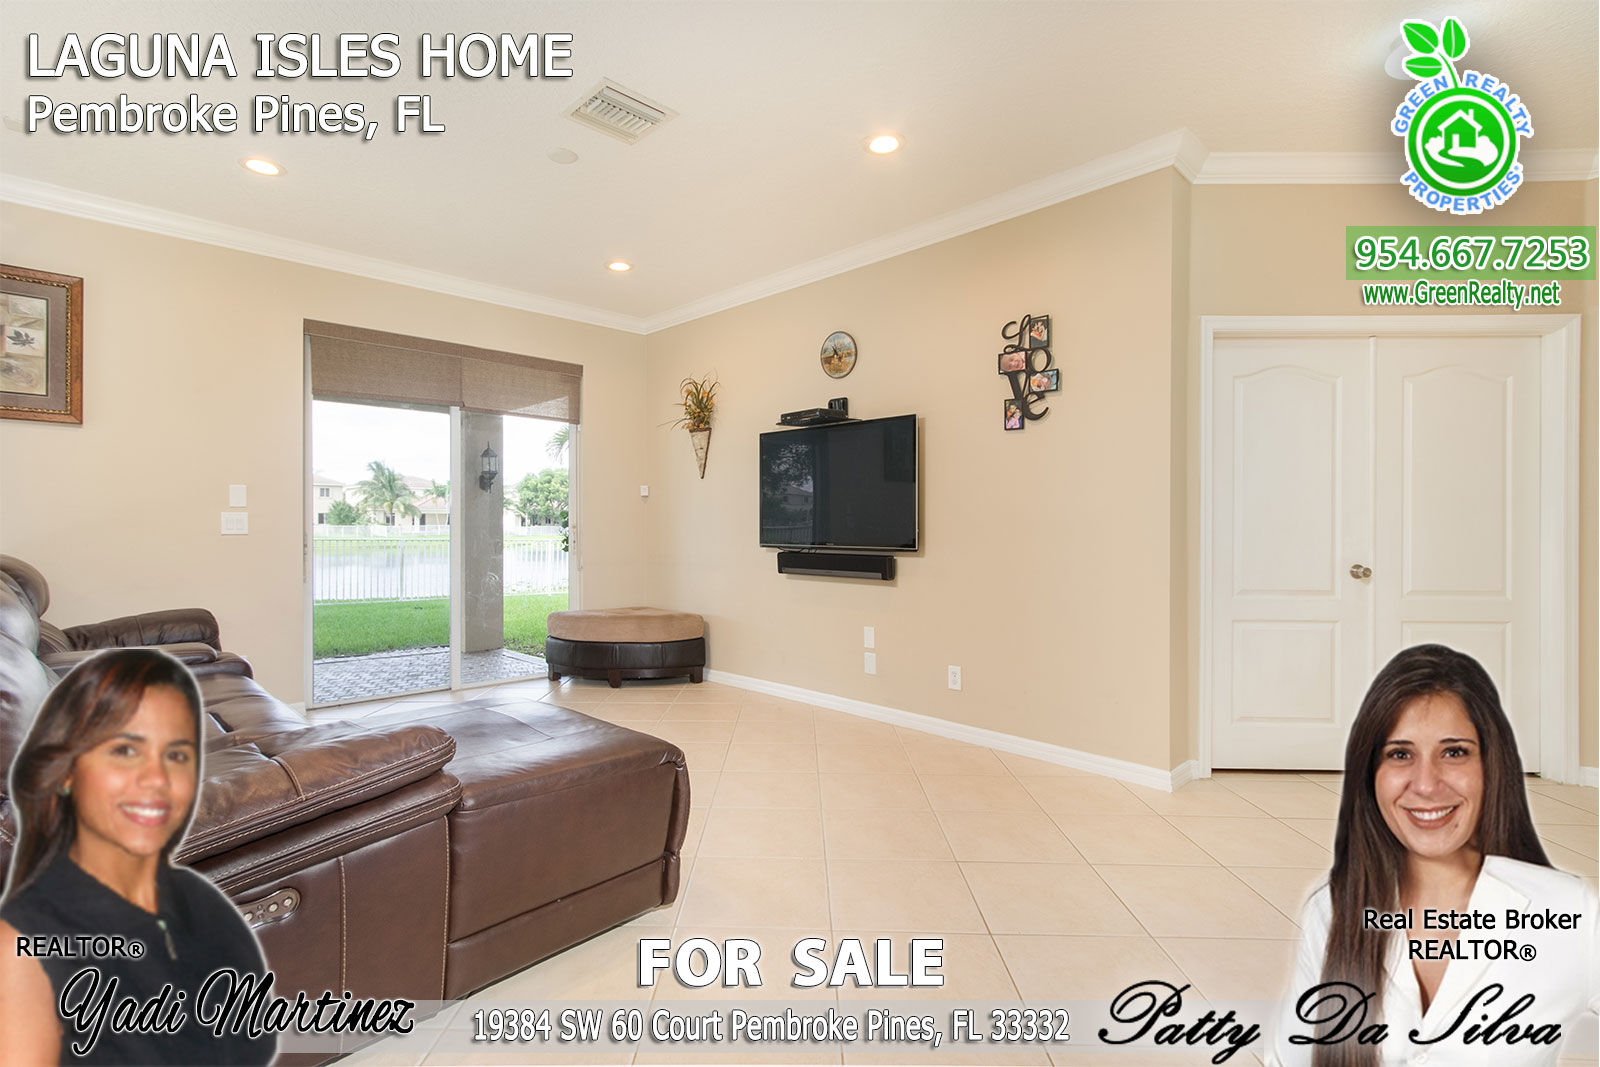 Pembroke-pines-laguna-isles-home-for-sale-by-green-realty-properties-6